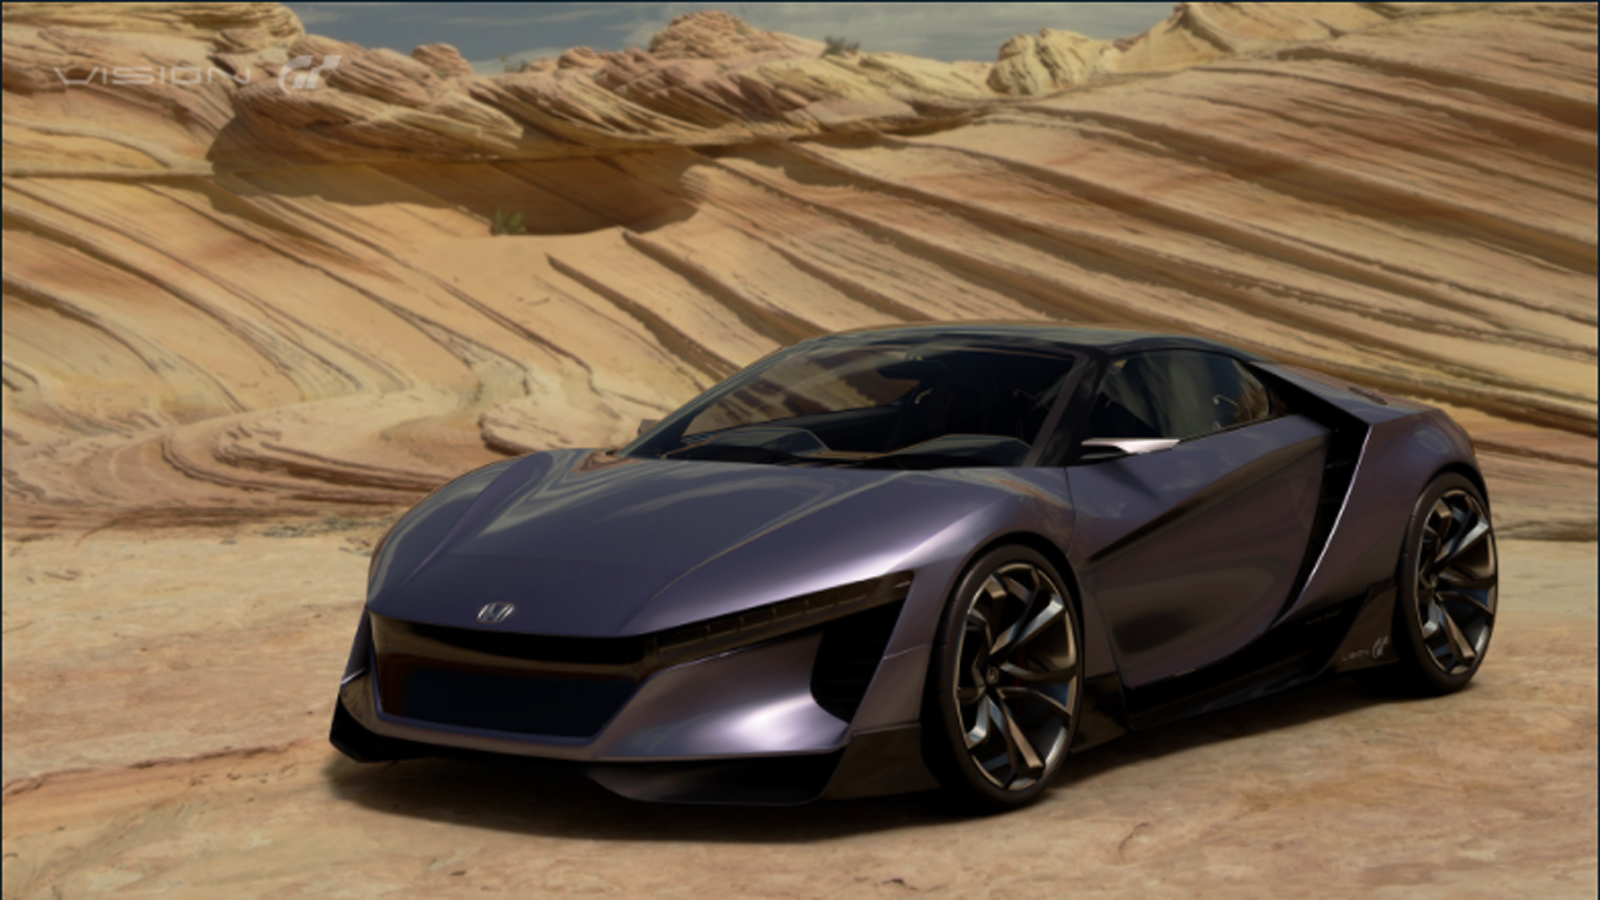 Honda's Vision GT Concept Makes Its Digital Debut